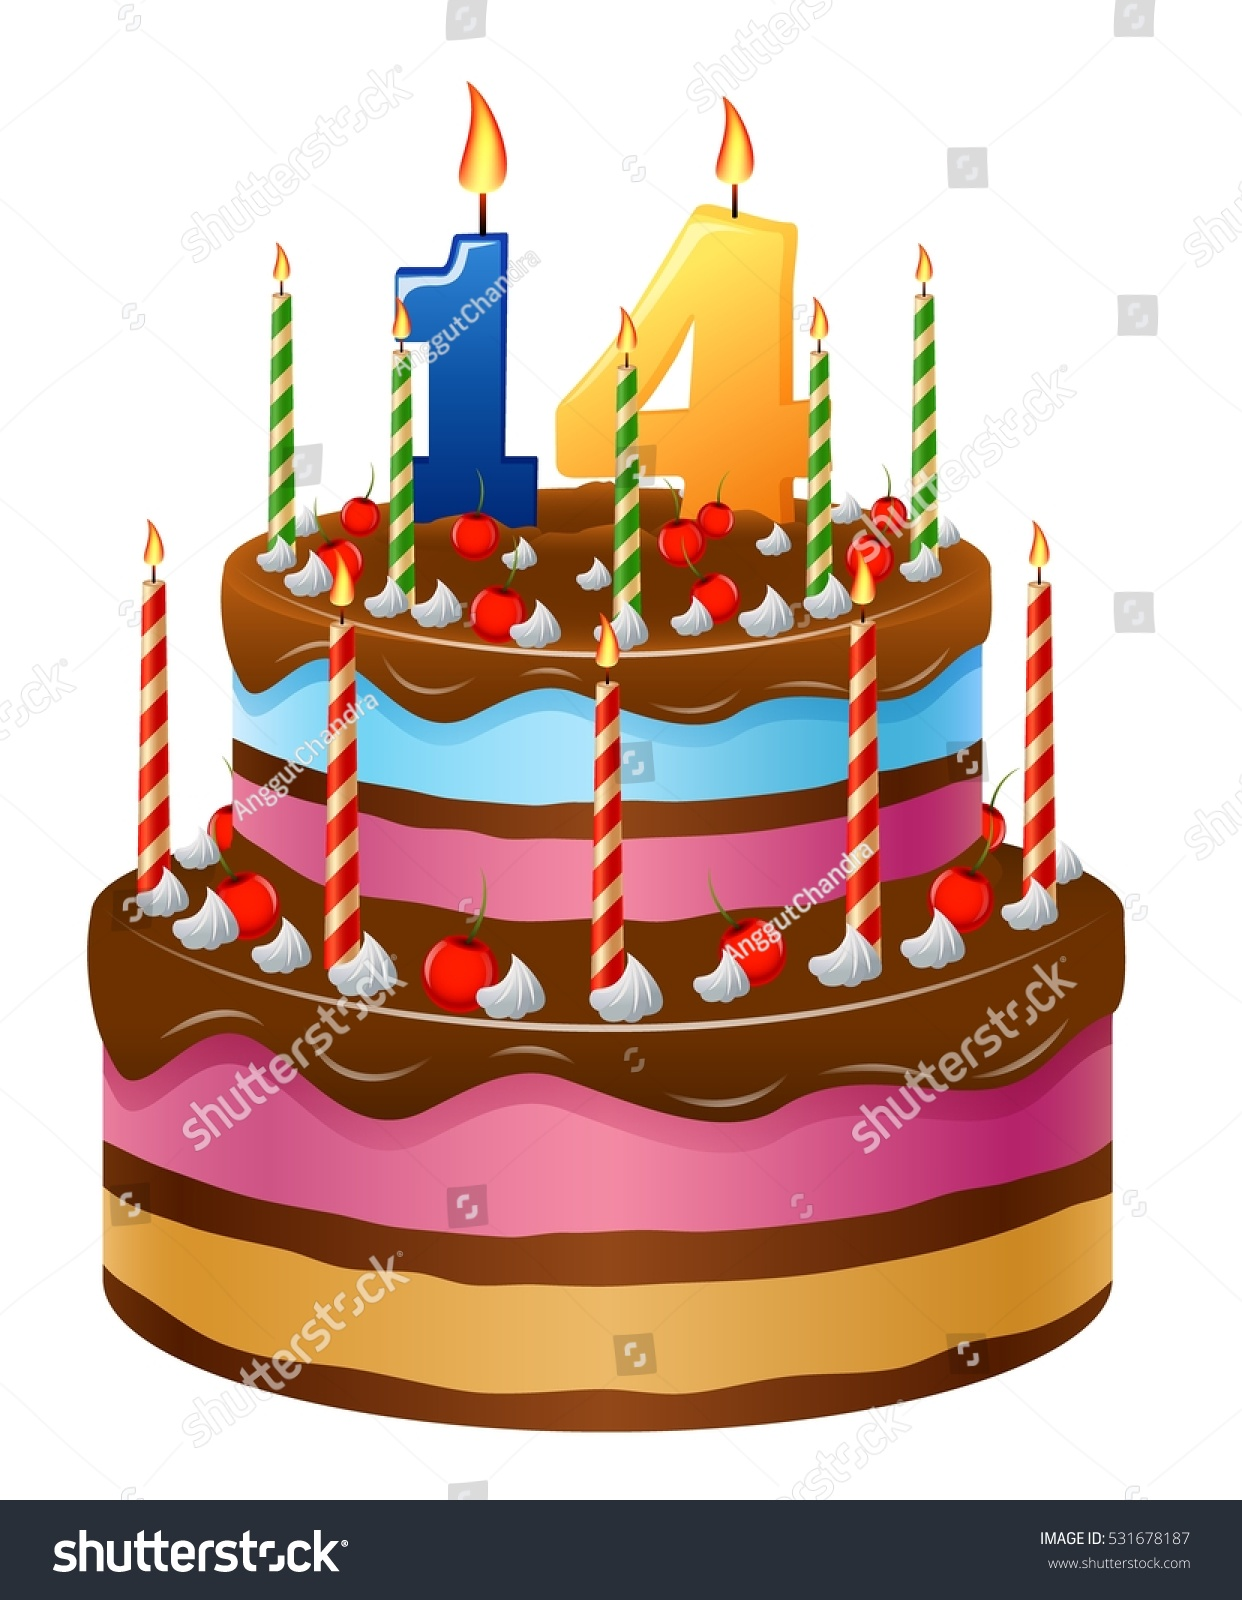 Happy Birthday Cake Numbers 14 Stock Vector Royalty Free 531678187